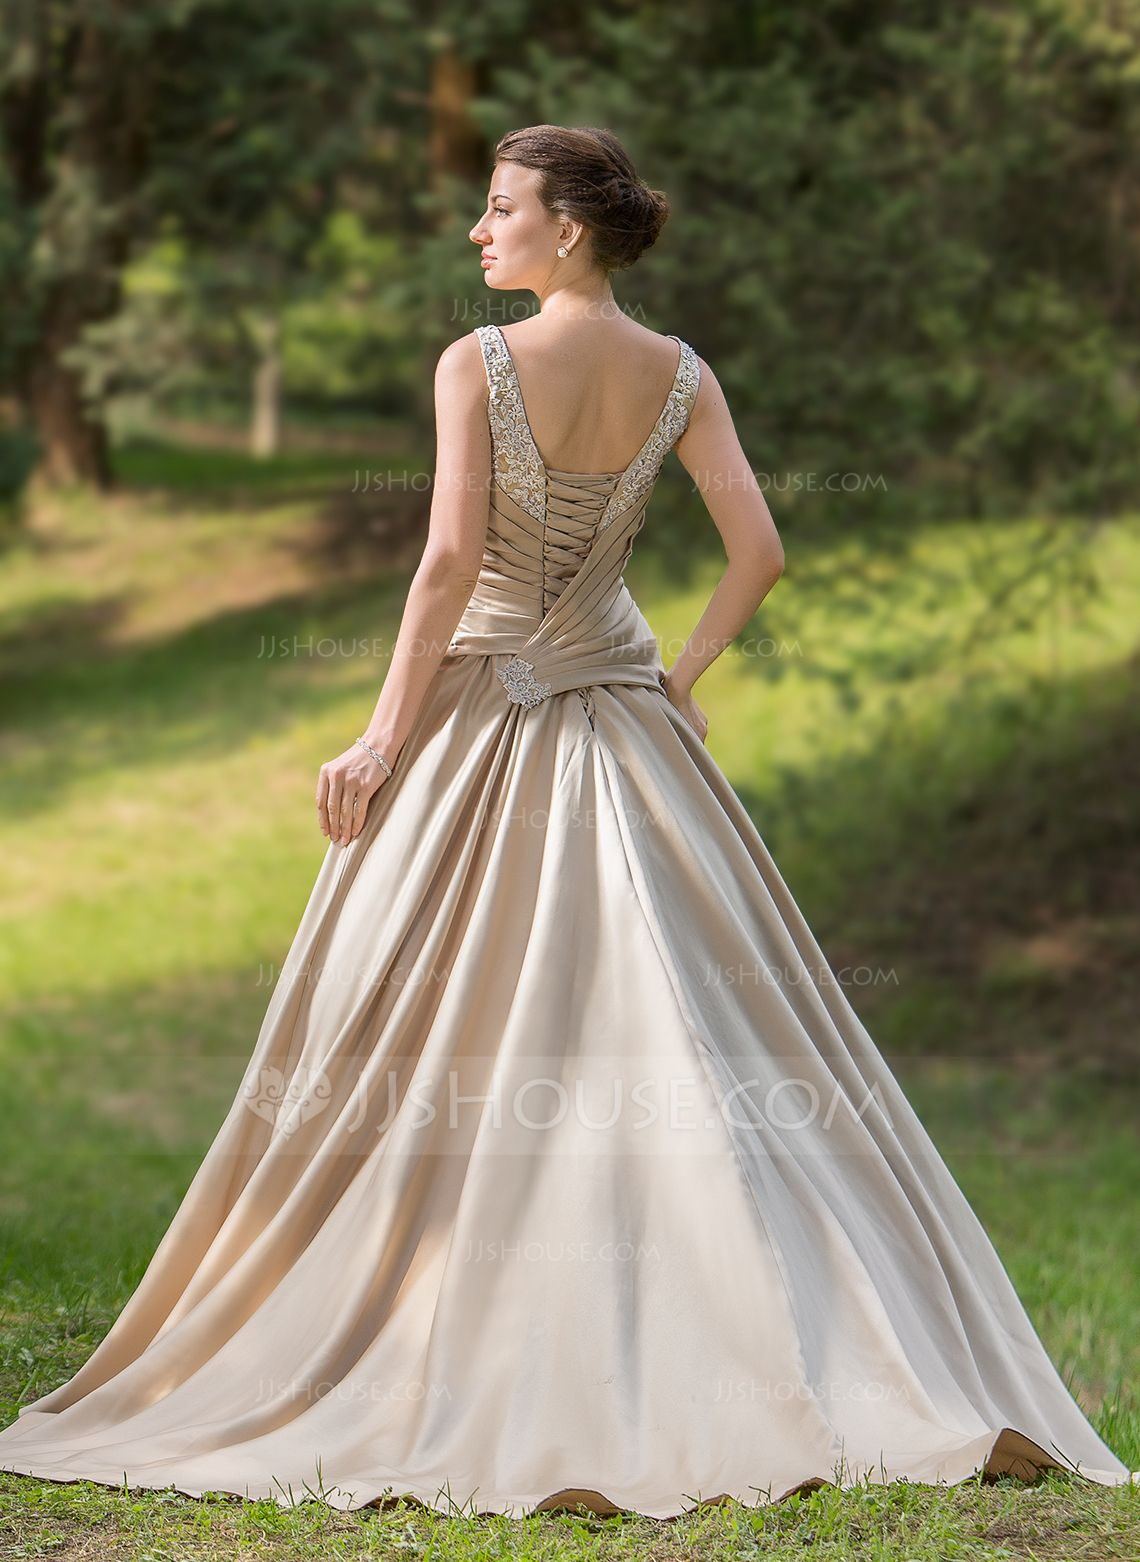 Outdoor summer wedding dresses  BallGown Sweetheart Court Train Ruffle Beading Appliques Lace